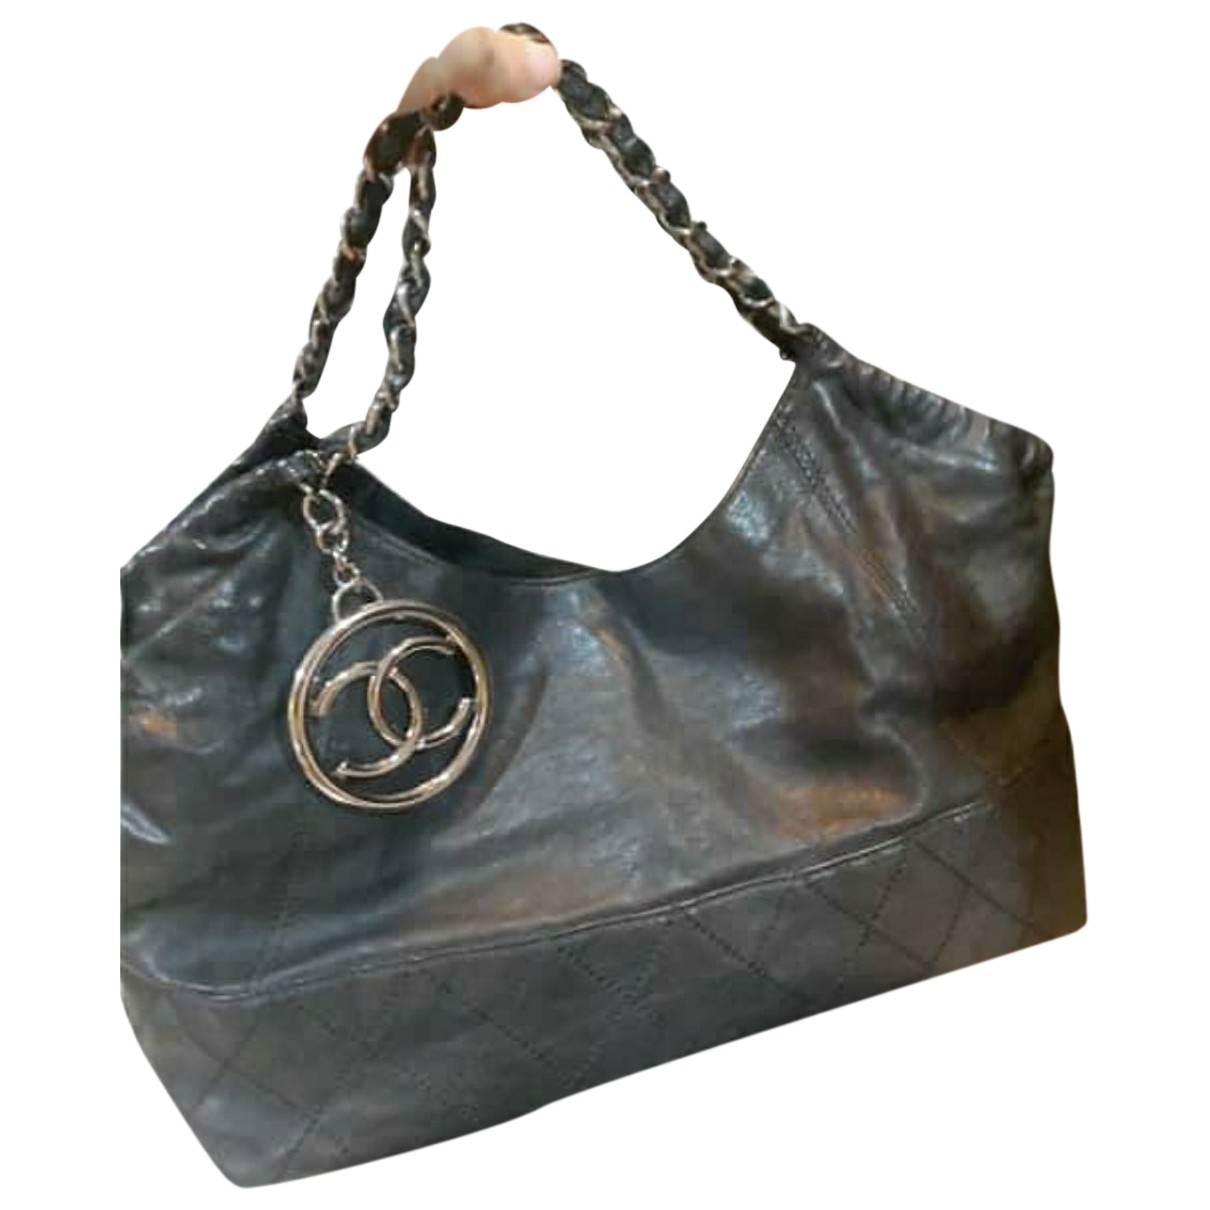 Chanel Coco Cabas Black Leather handbag for Women \N